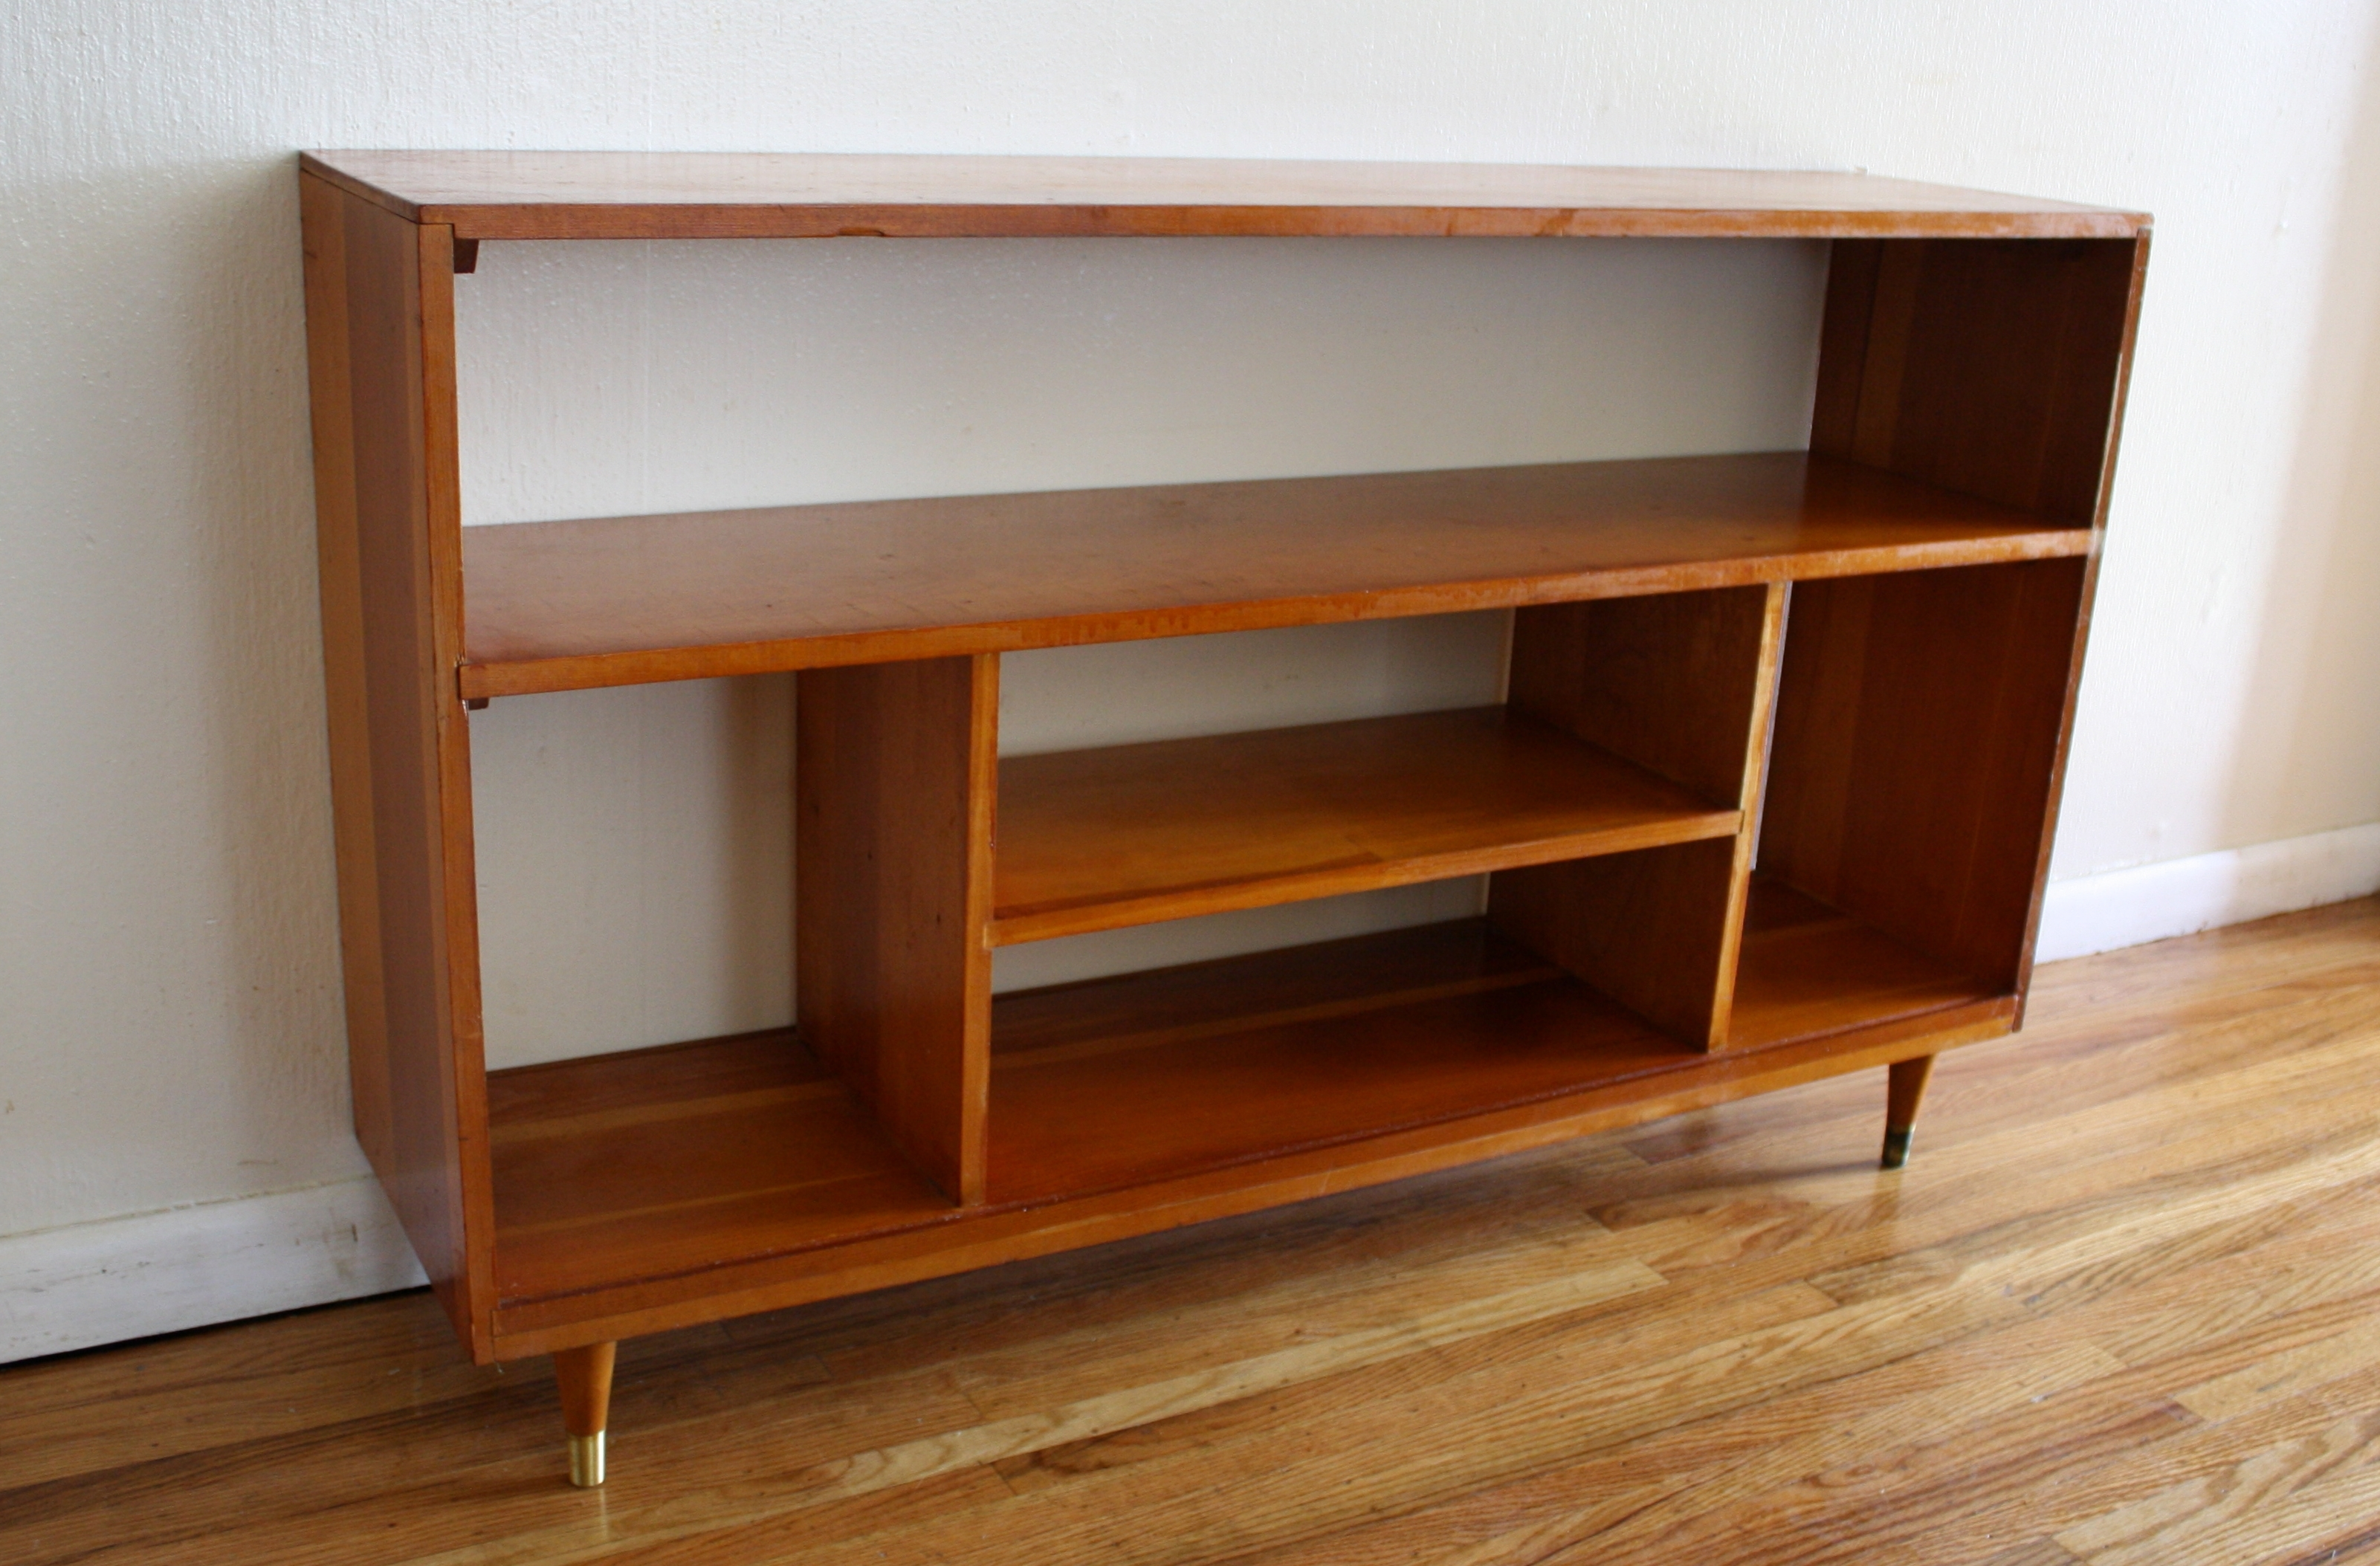 Newest Mid Century Modern Bookshelves (View 13 of 15)